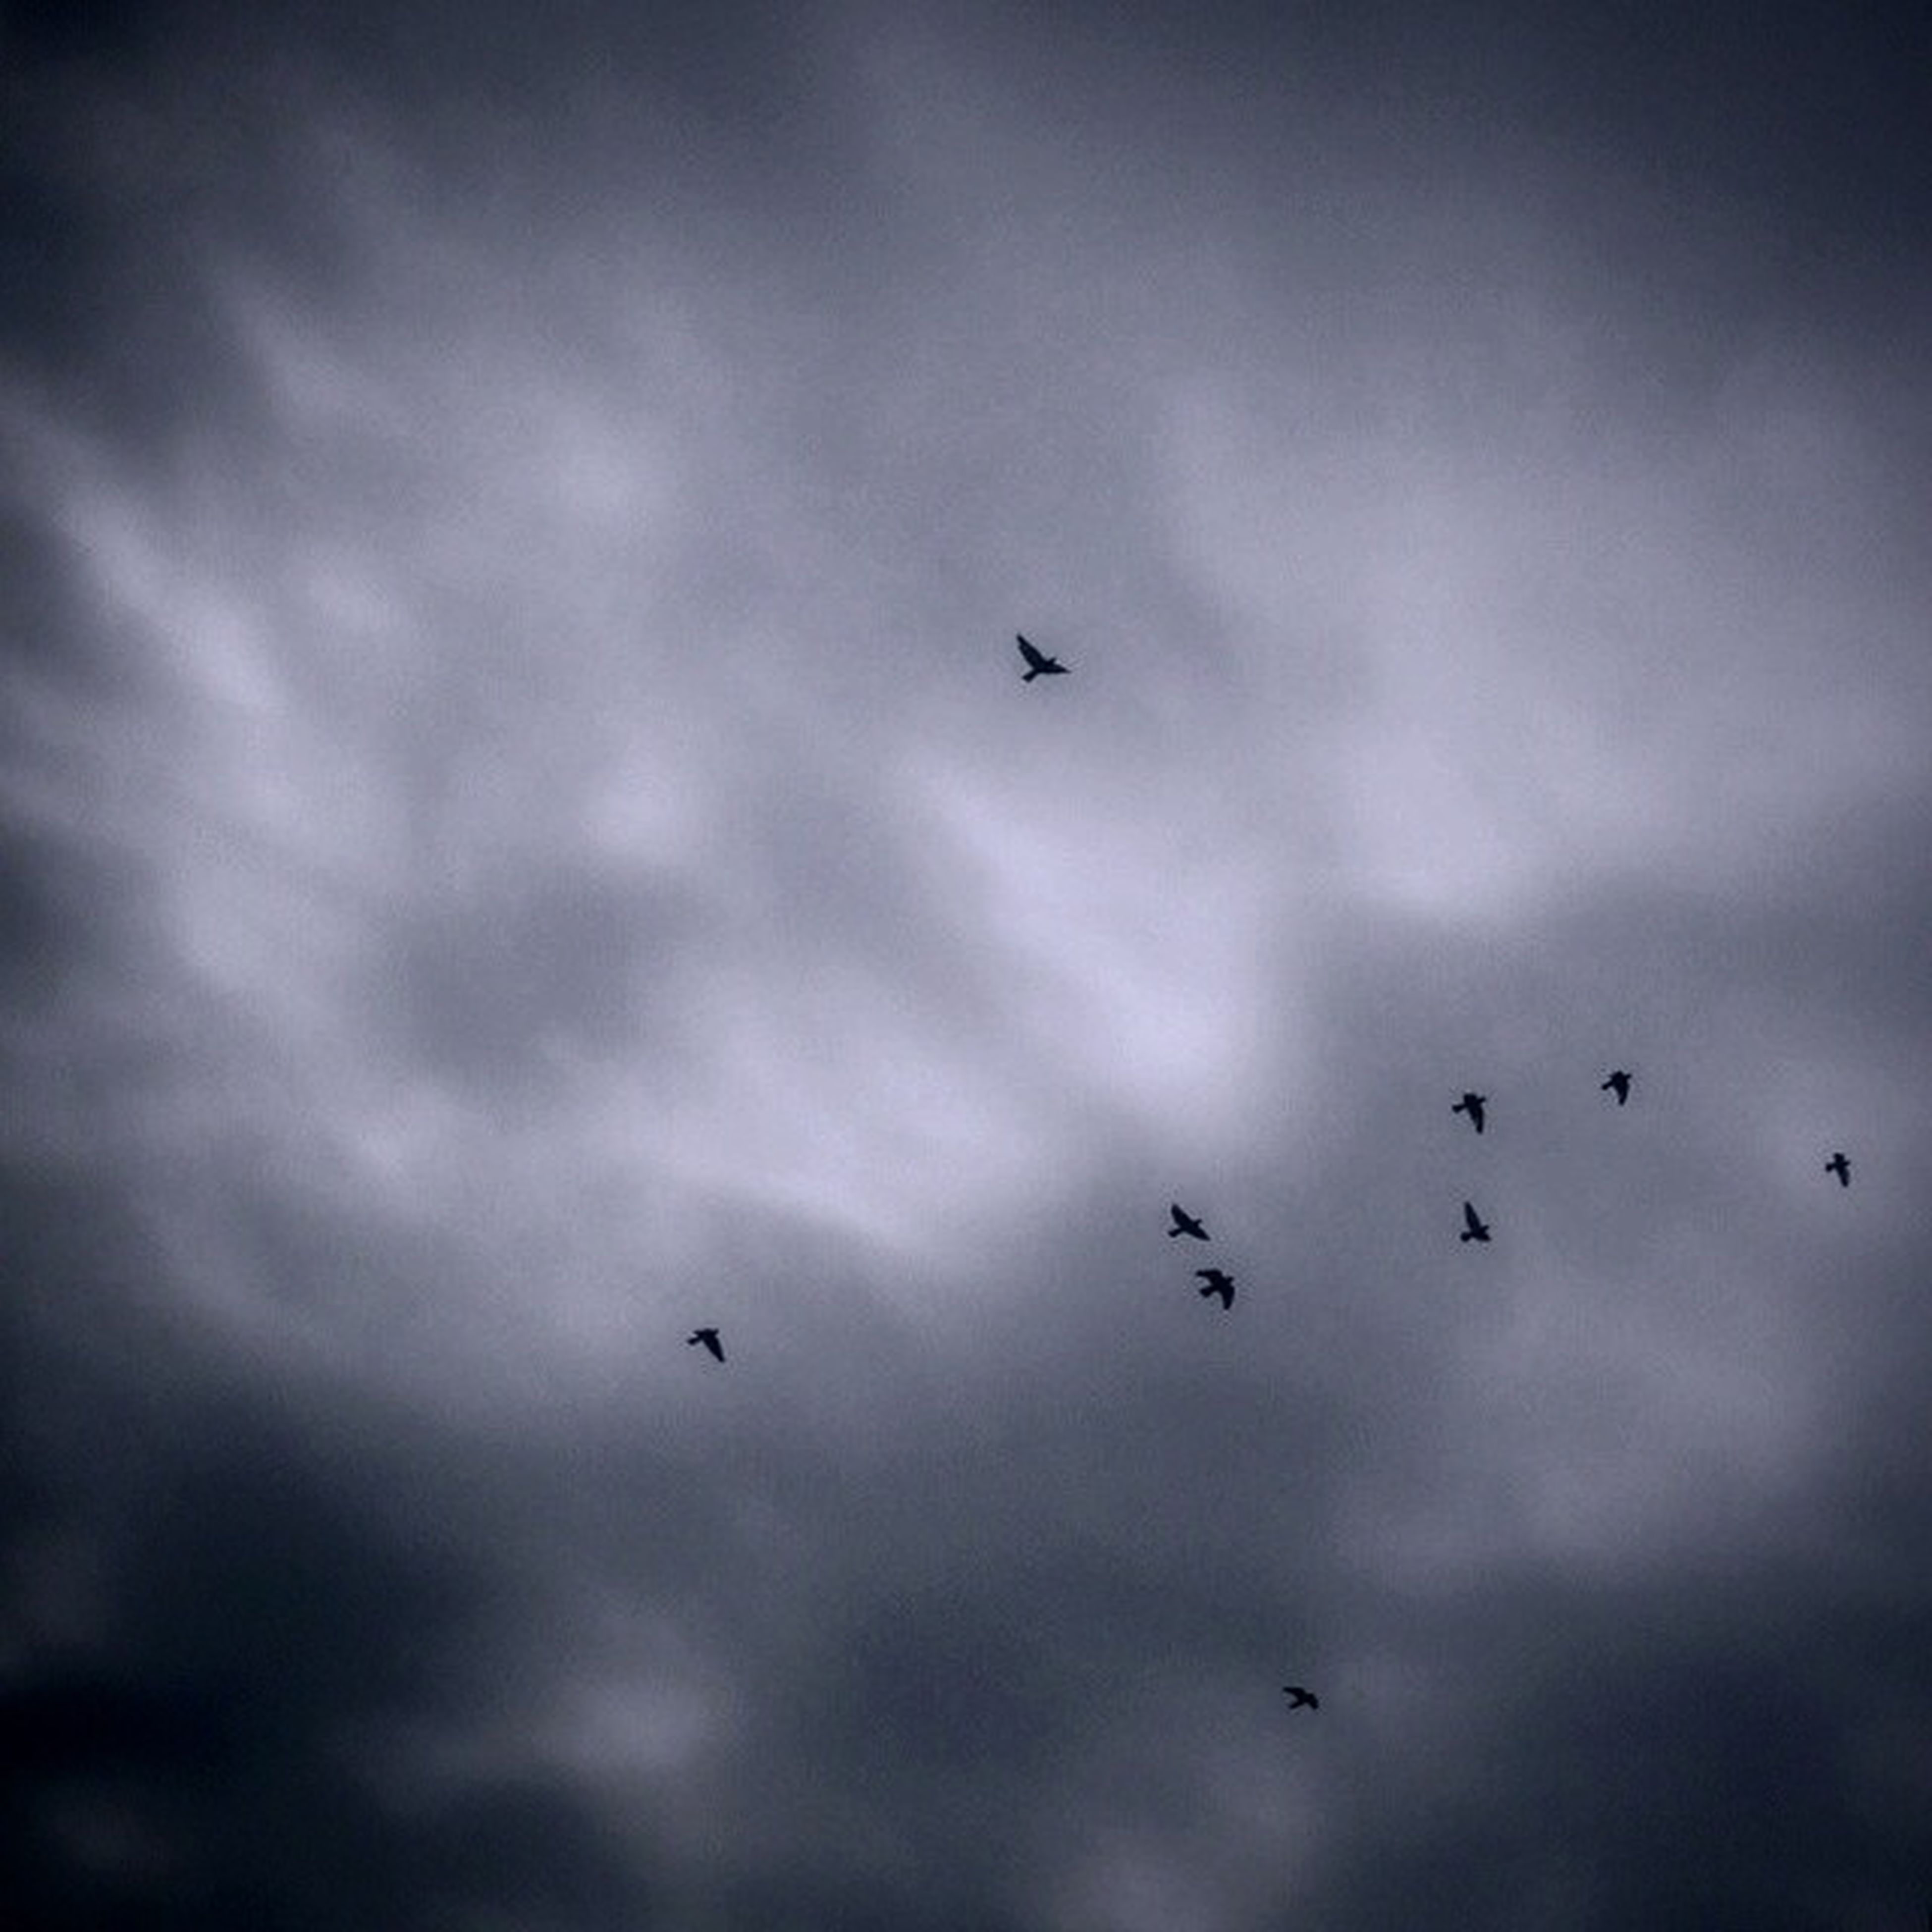 bird, flying, animal themes, animals in the wild, wildlife, sky, low angle view, cloud - sky, cloudy, silhouette, nature, flock of birds, beauty in nature, mid-air, cloud, spread wings, tranquility, scenics, weather